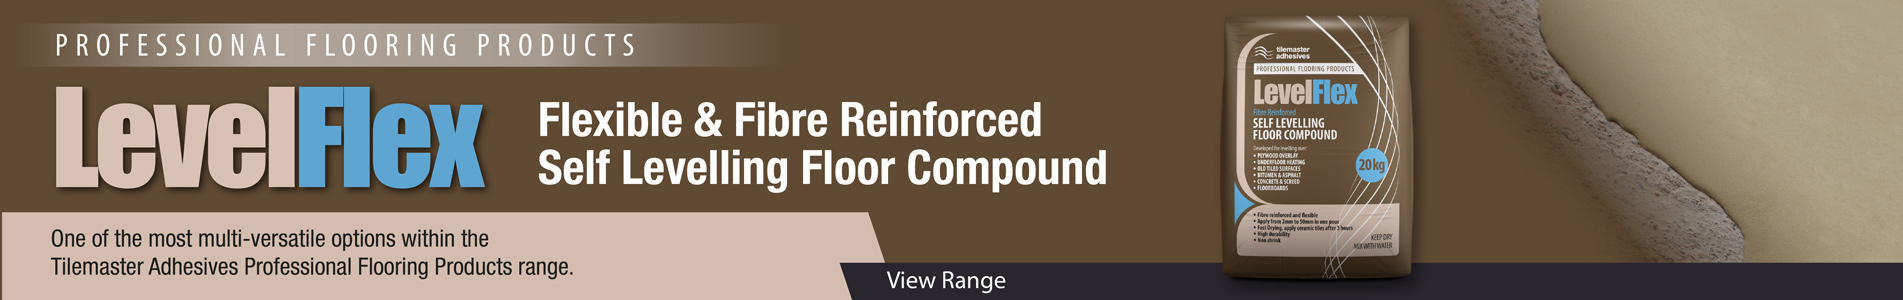 Level Flex Flexible & Fibre Reinforced Self Levelling Floor Compound One of the most multi-versatile options within the Tilemaster Adhesives Professional Flooring Products range.